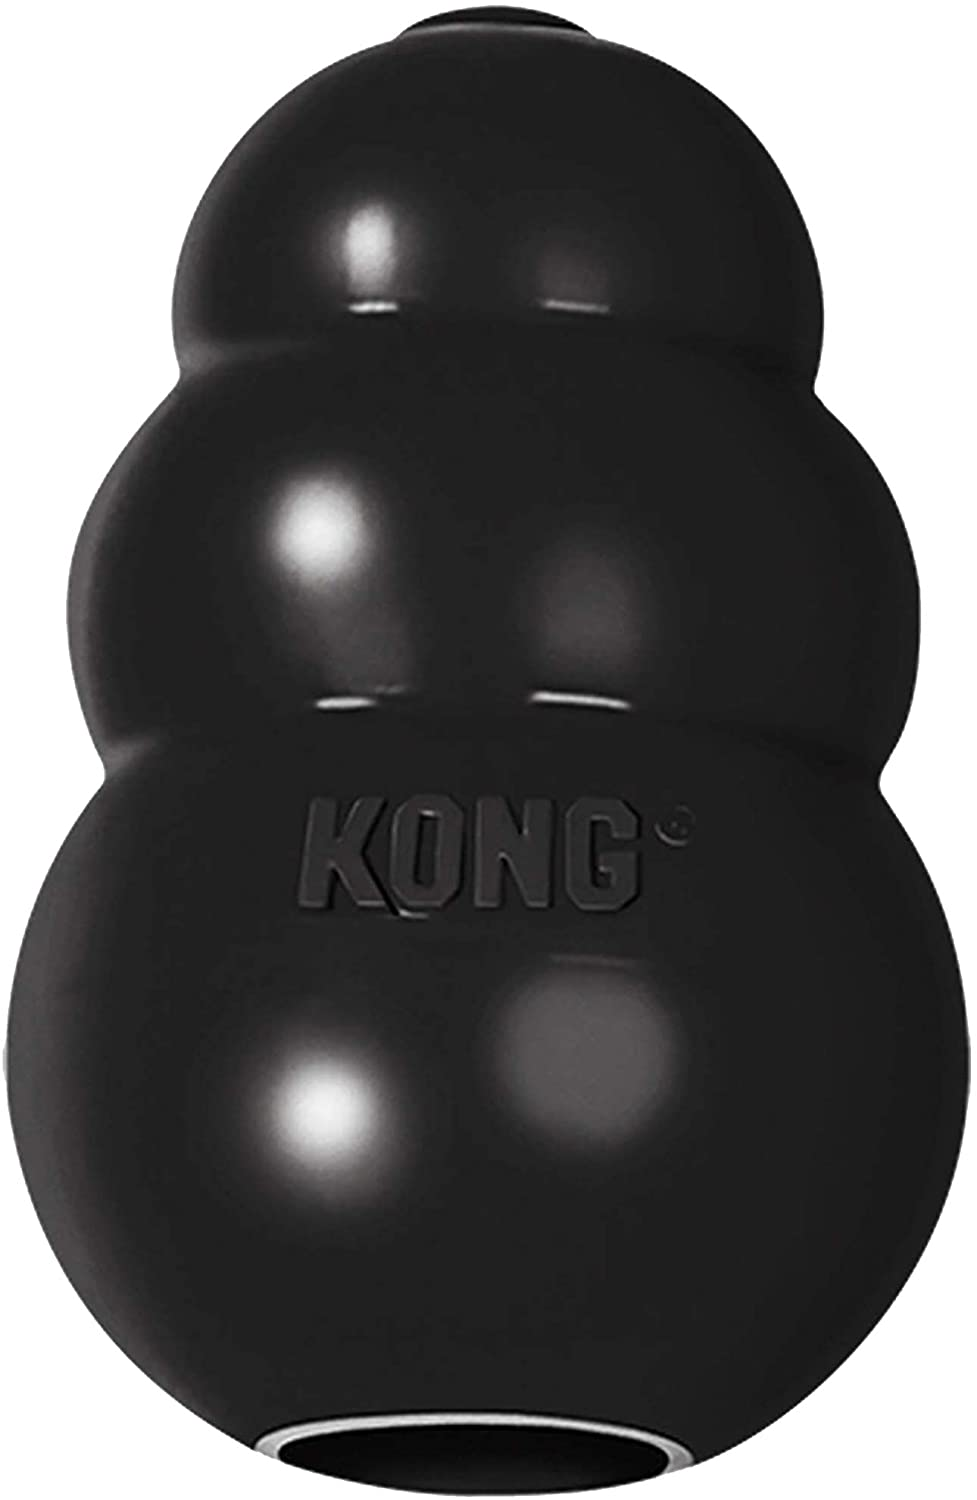 KONG - Extreme Dog Toy - Toughest Natural Rubber, Black - Fun to Chew, Chase and Fetch